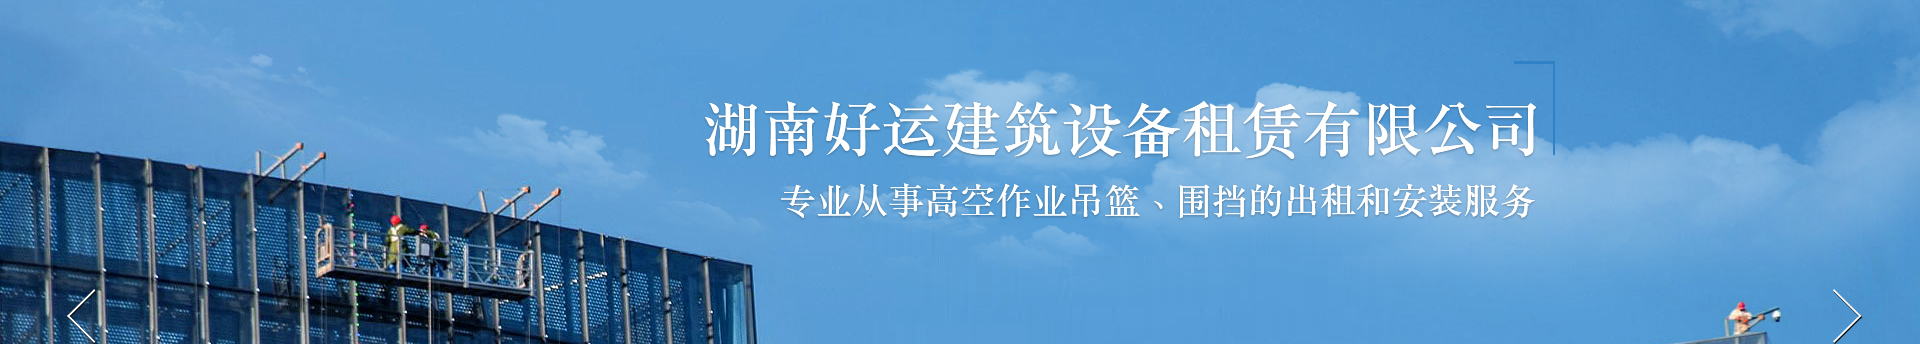 http://www.zz-haoyun.com/data/upload/202001/20200114175808_833.jpg